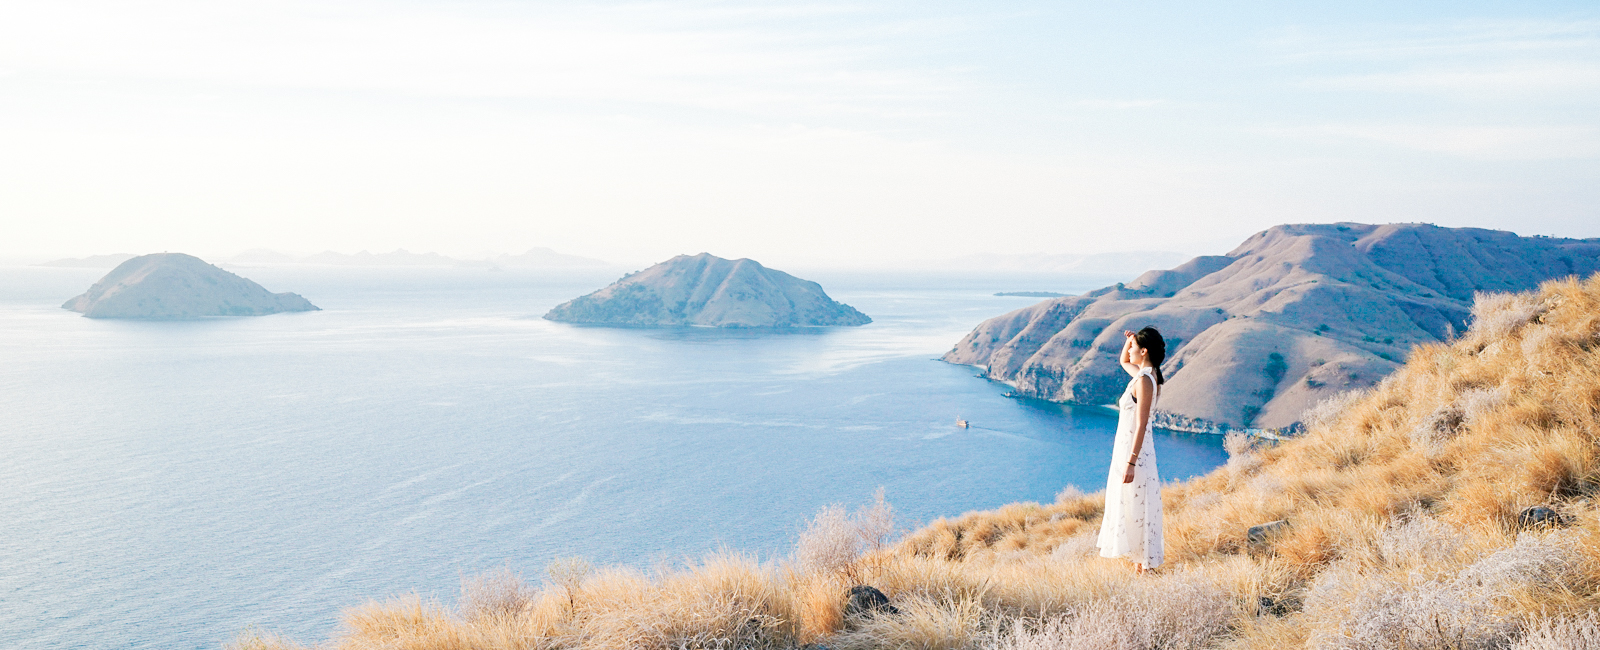 WHAT TO PACK: LABUAN BAJO, KOMODO ISLAND